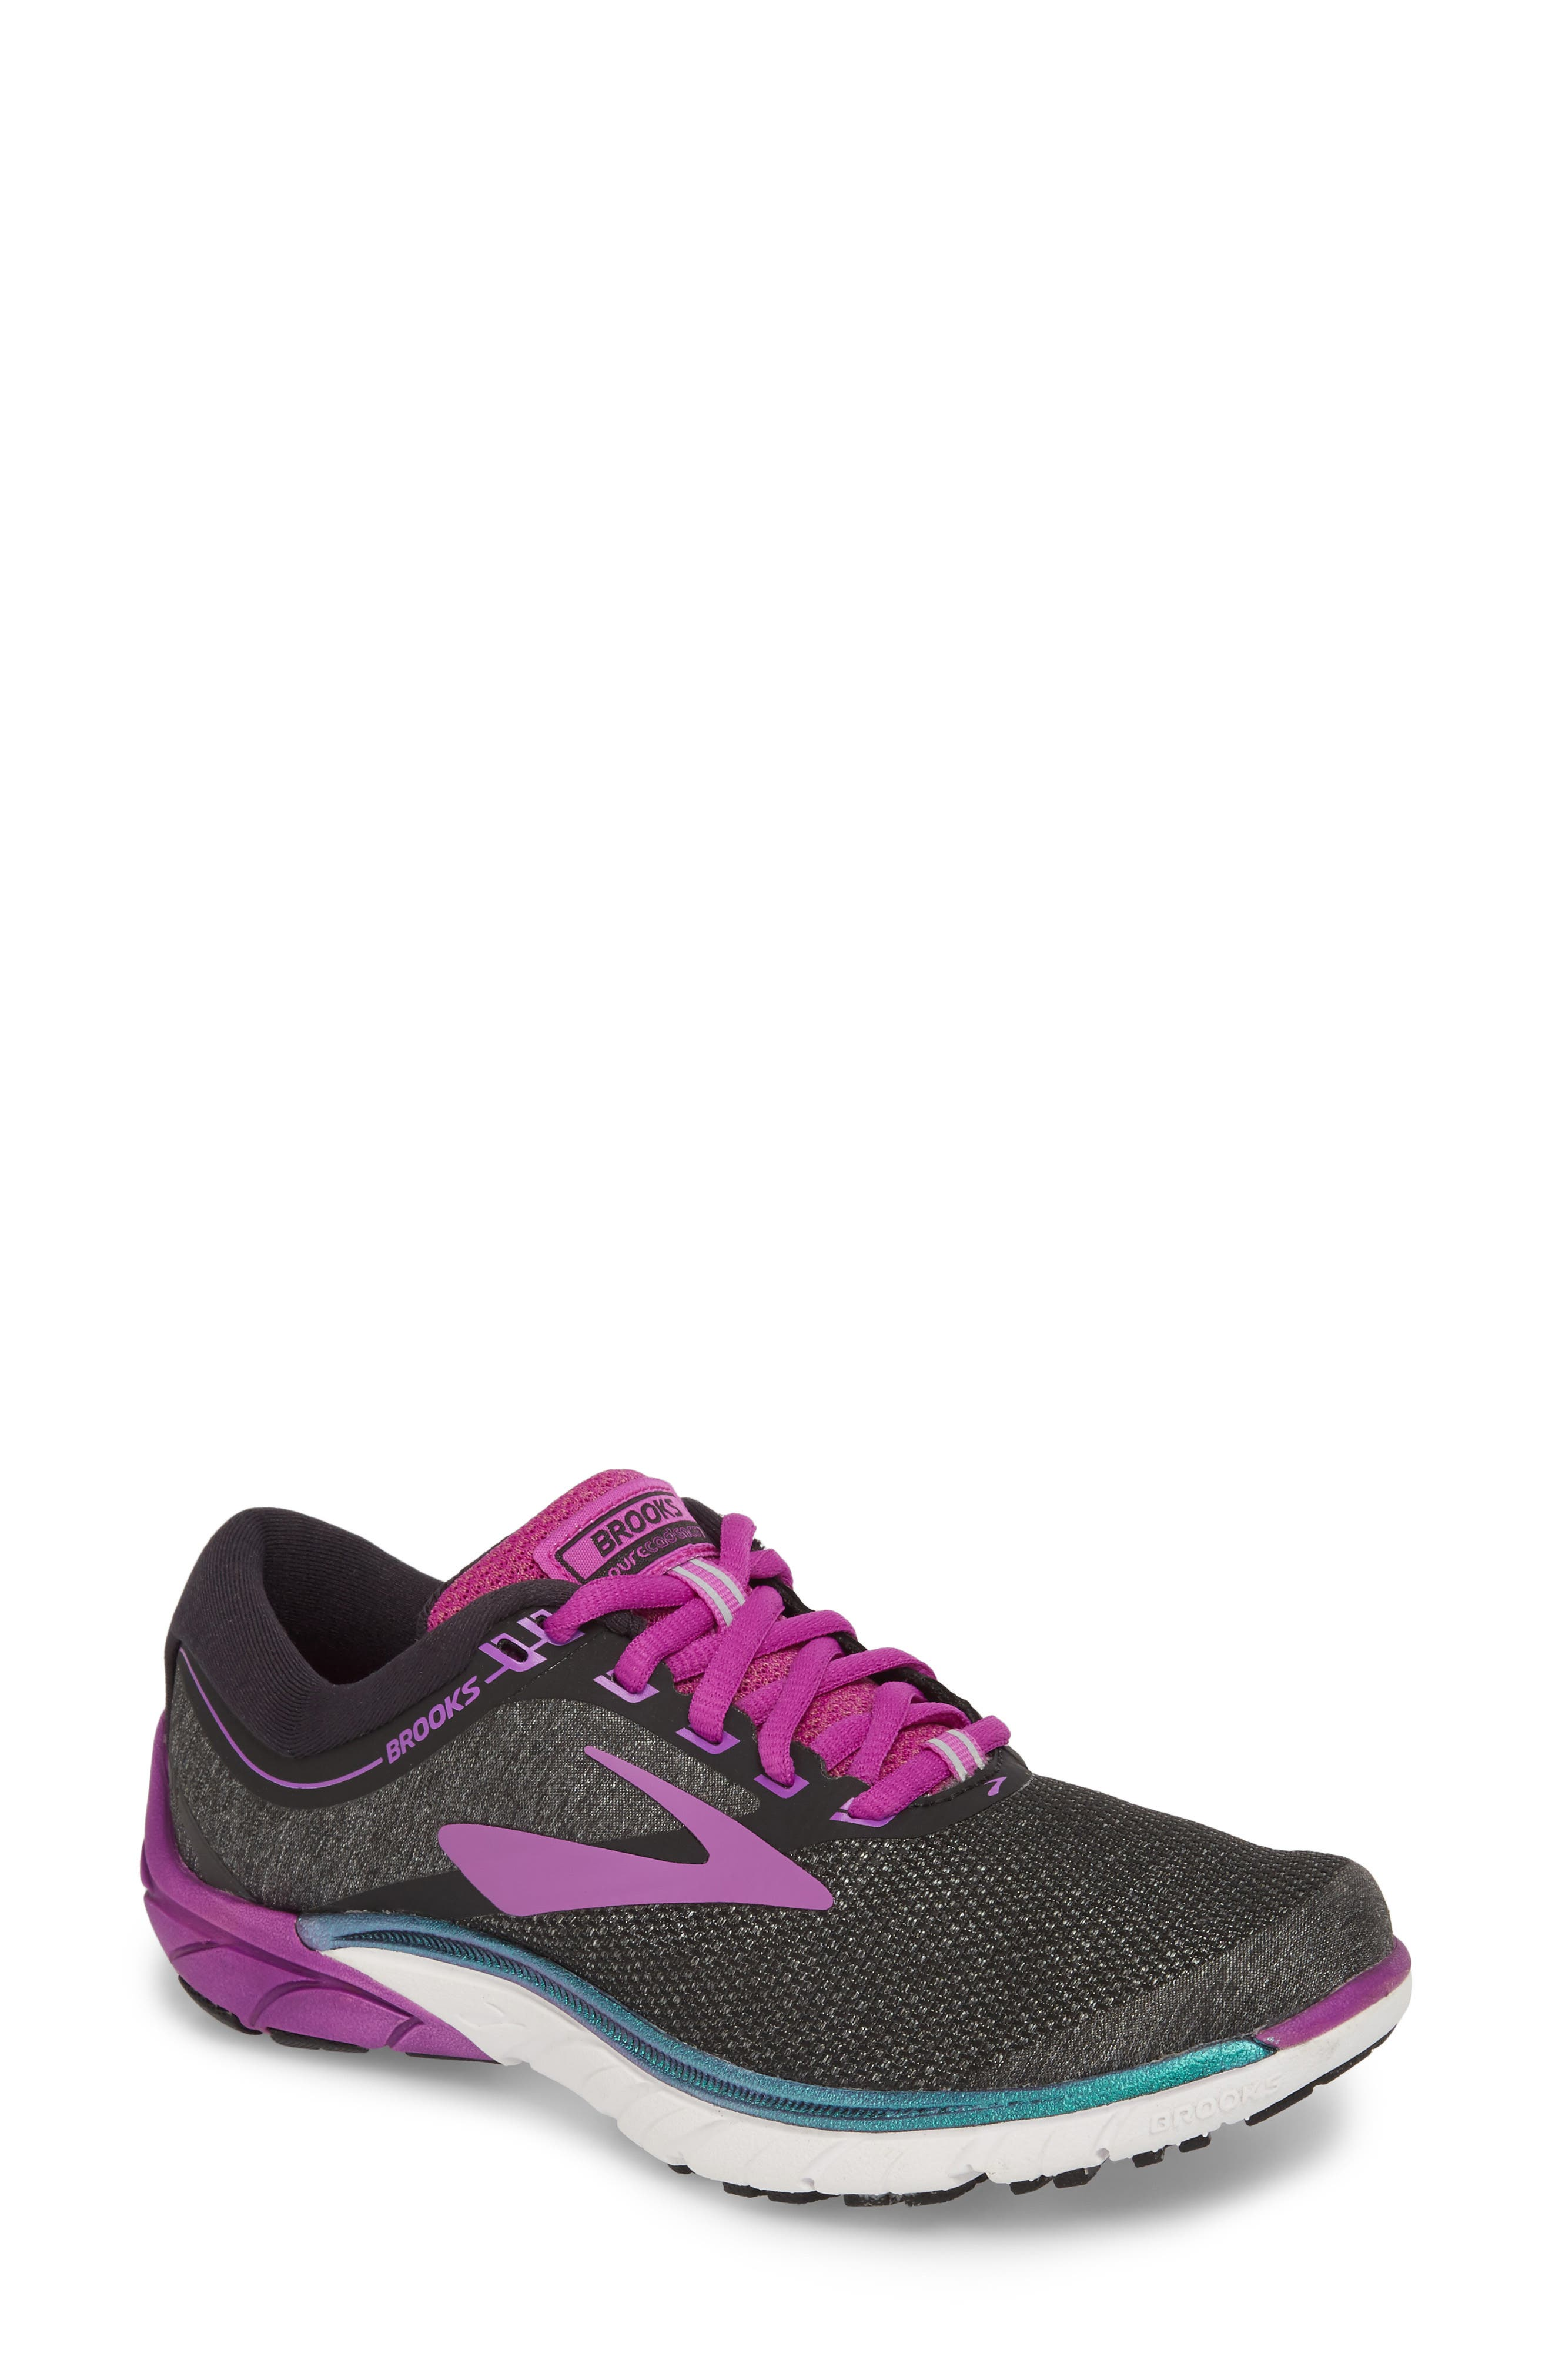 Brooks PureCadence 7 Road Running Shoe (Women)